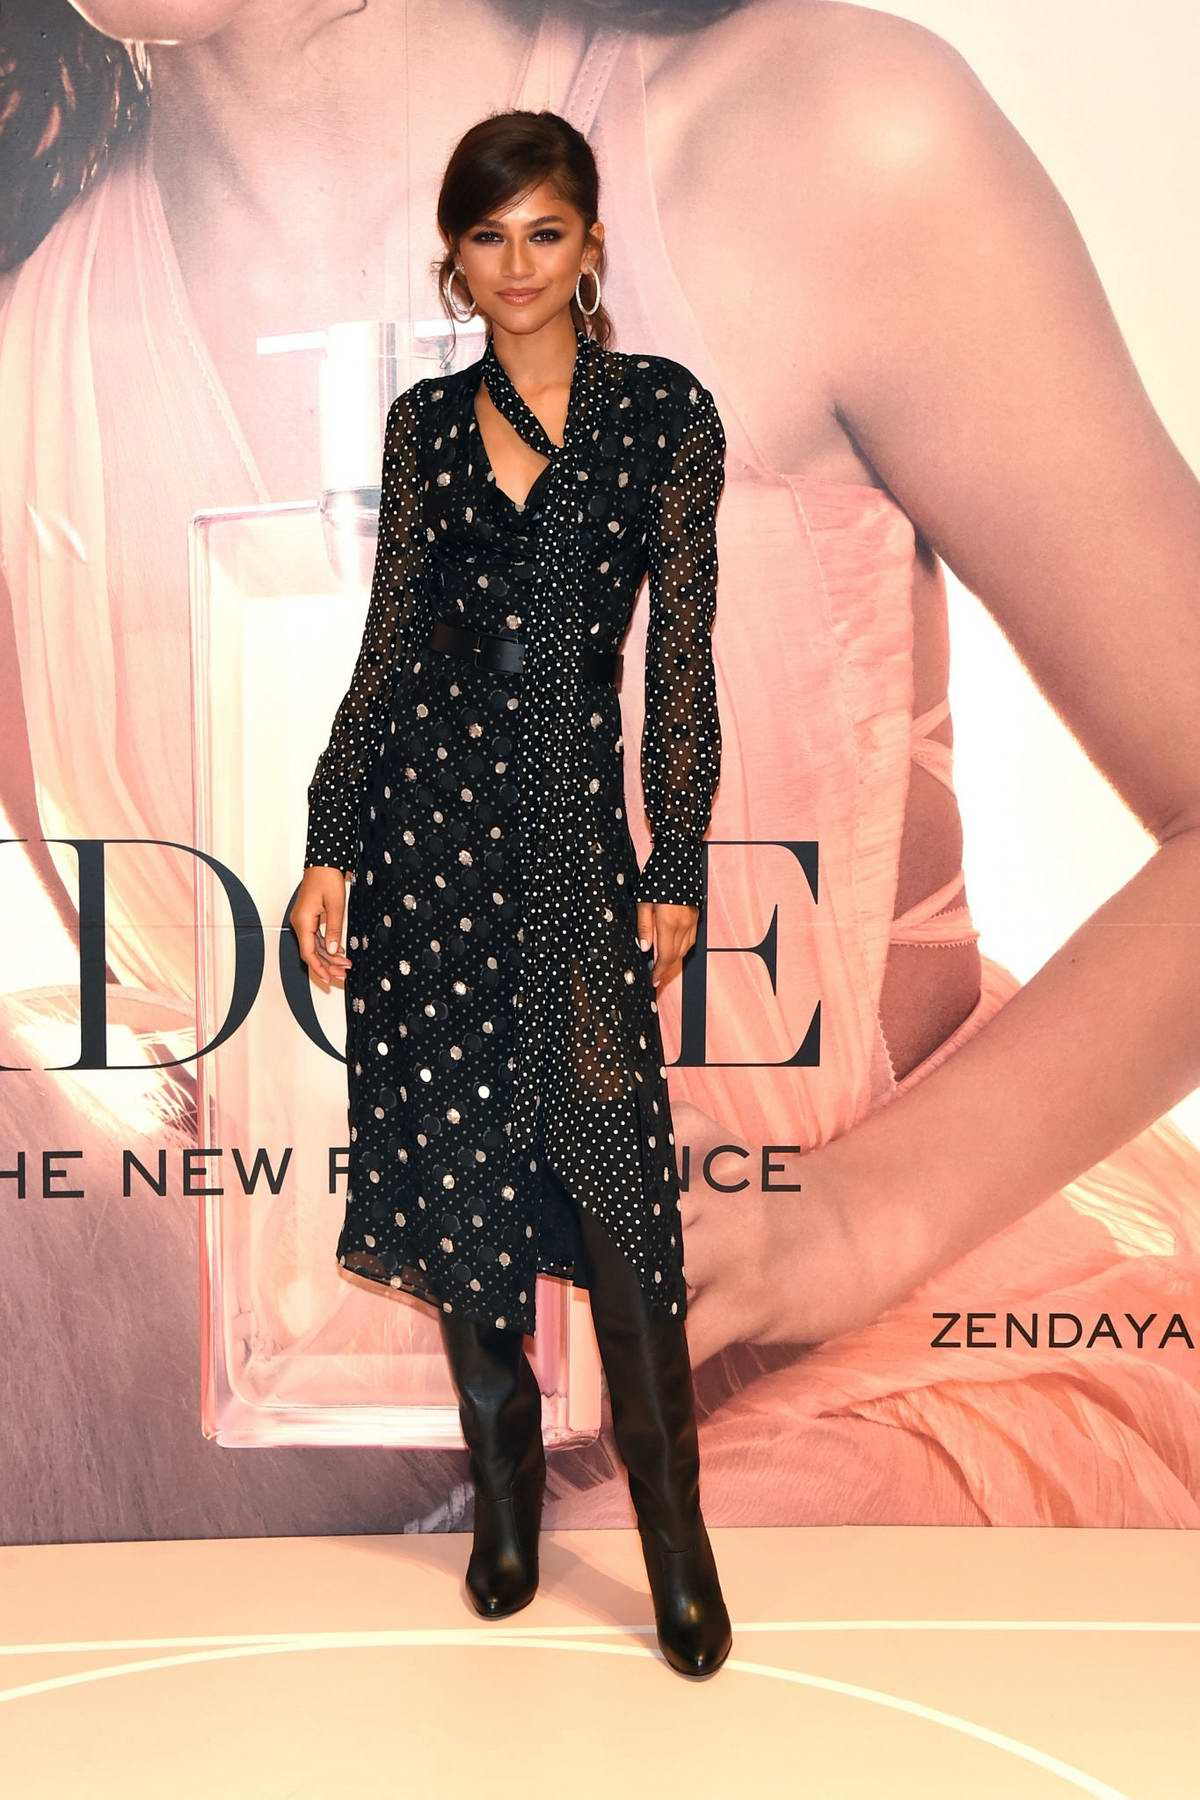 Zendaya attends Lancome Beauty event at Macy's at Herald Square in New York City